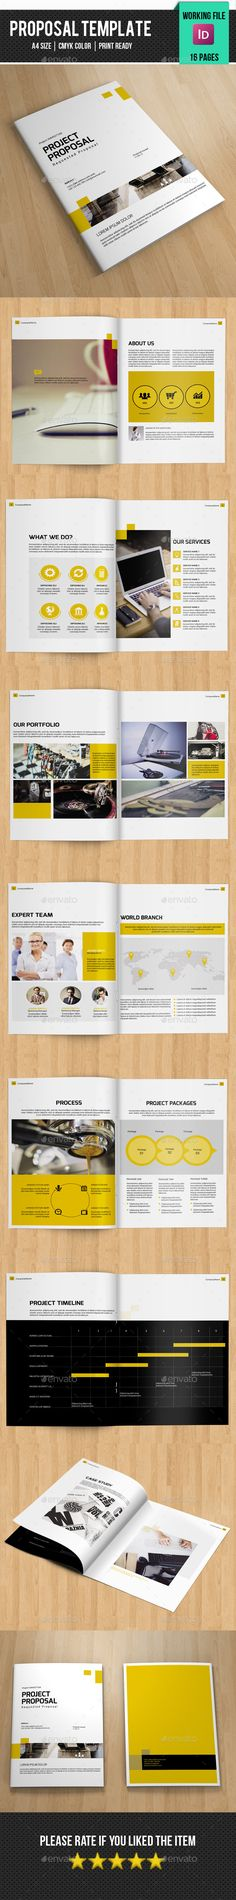 Business Project Proposal Template-V280 - Proposals & Invoices Stationery